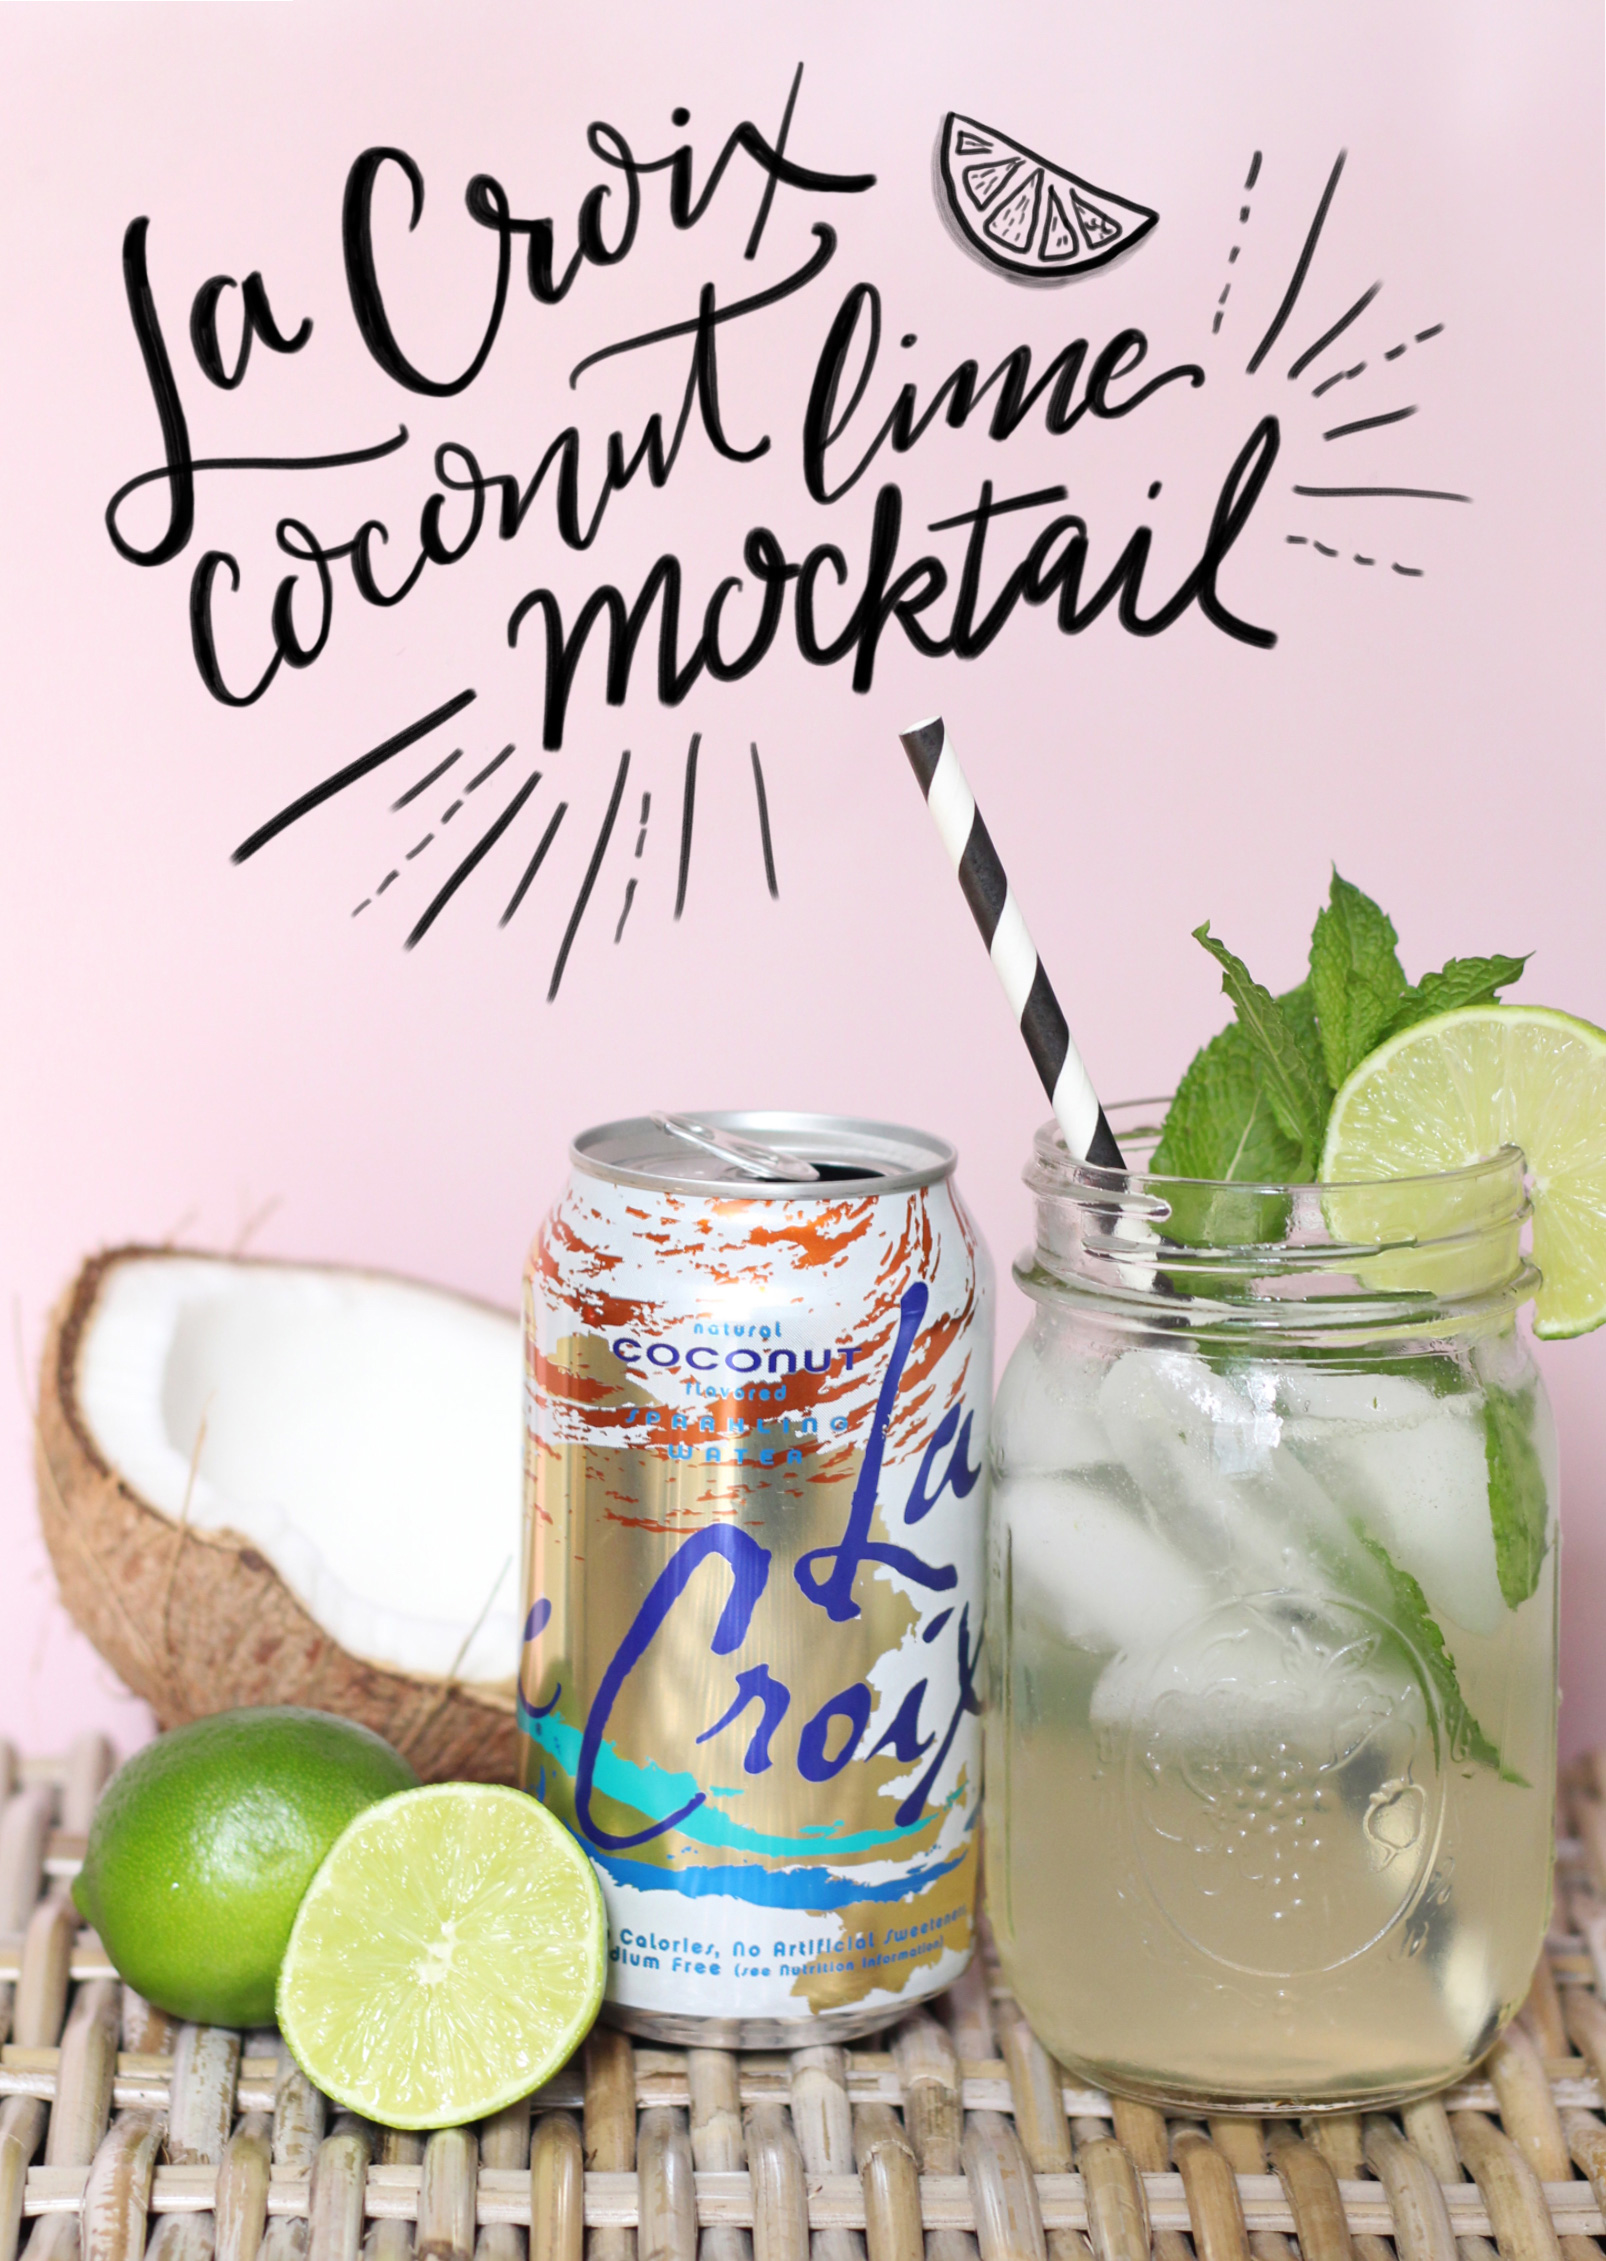 La Croix Coconut Lime Mocktail Recipe on Lily & Val Living.